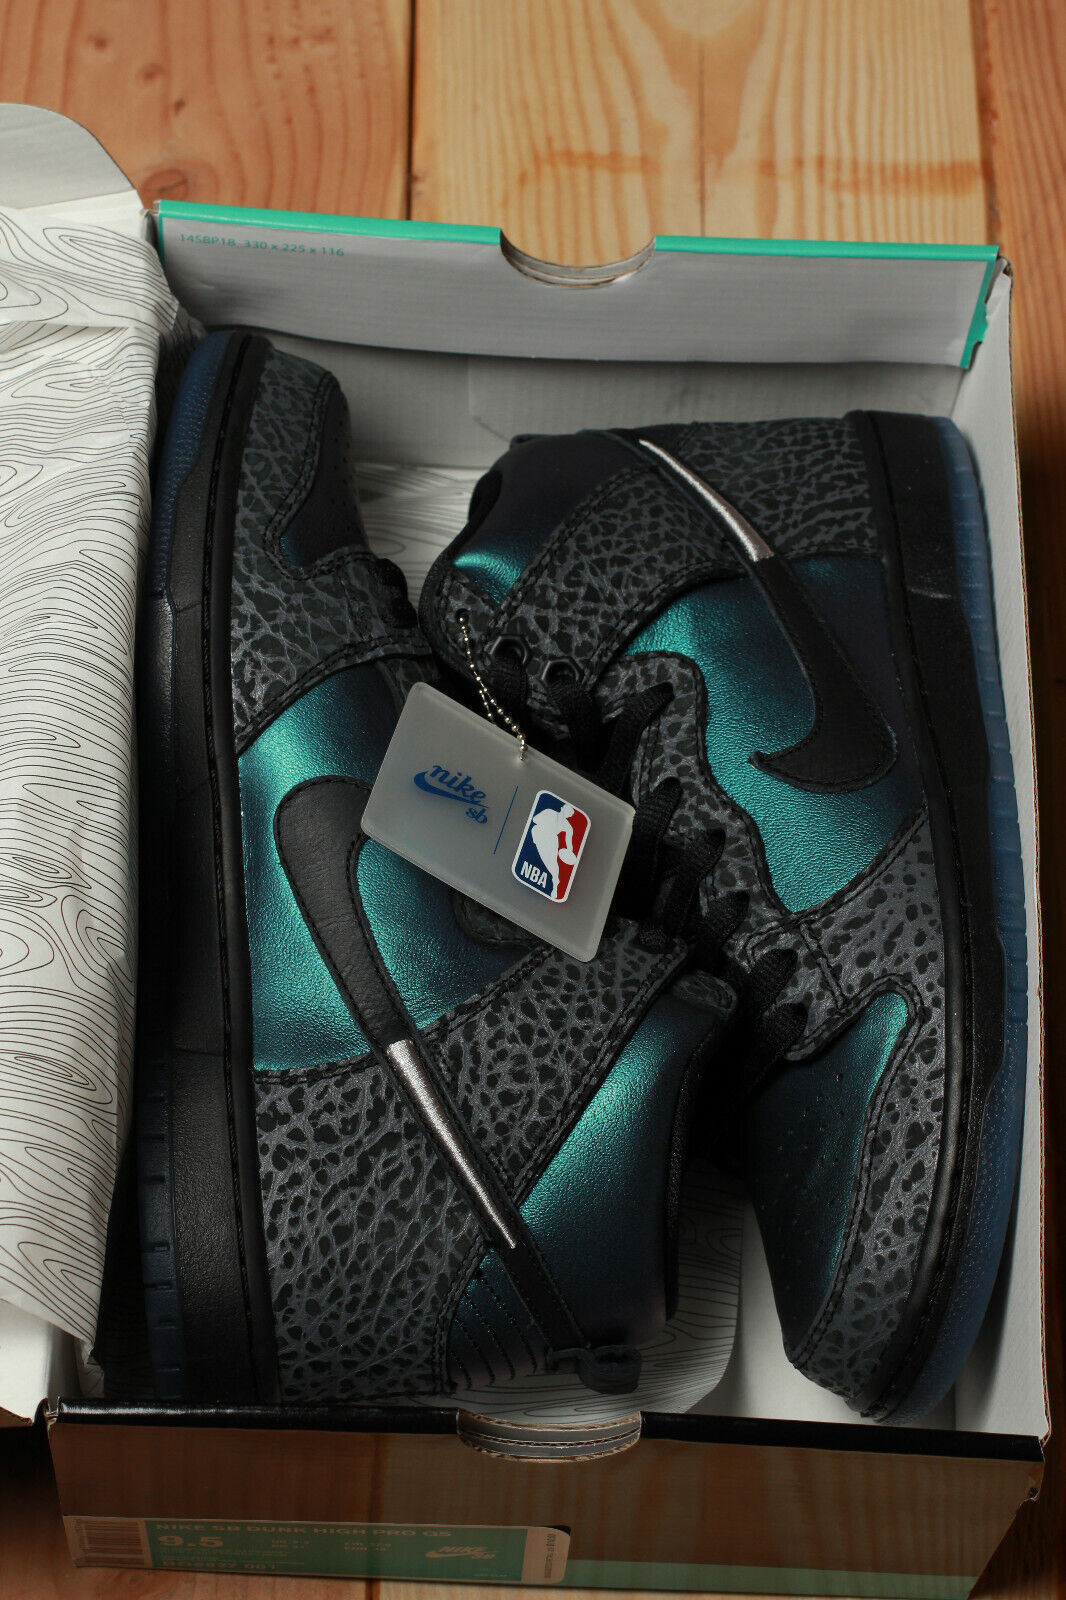 Nike SB Dunk High QS Black Sheep Black Hornet Size 10.5 US Men's